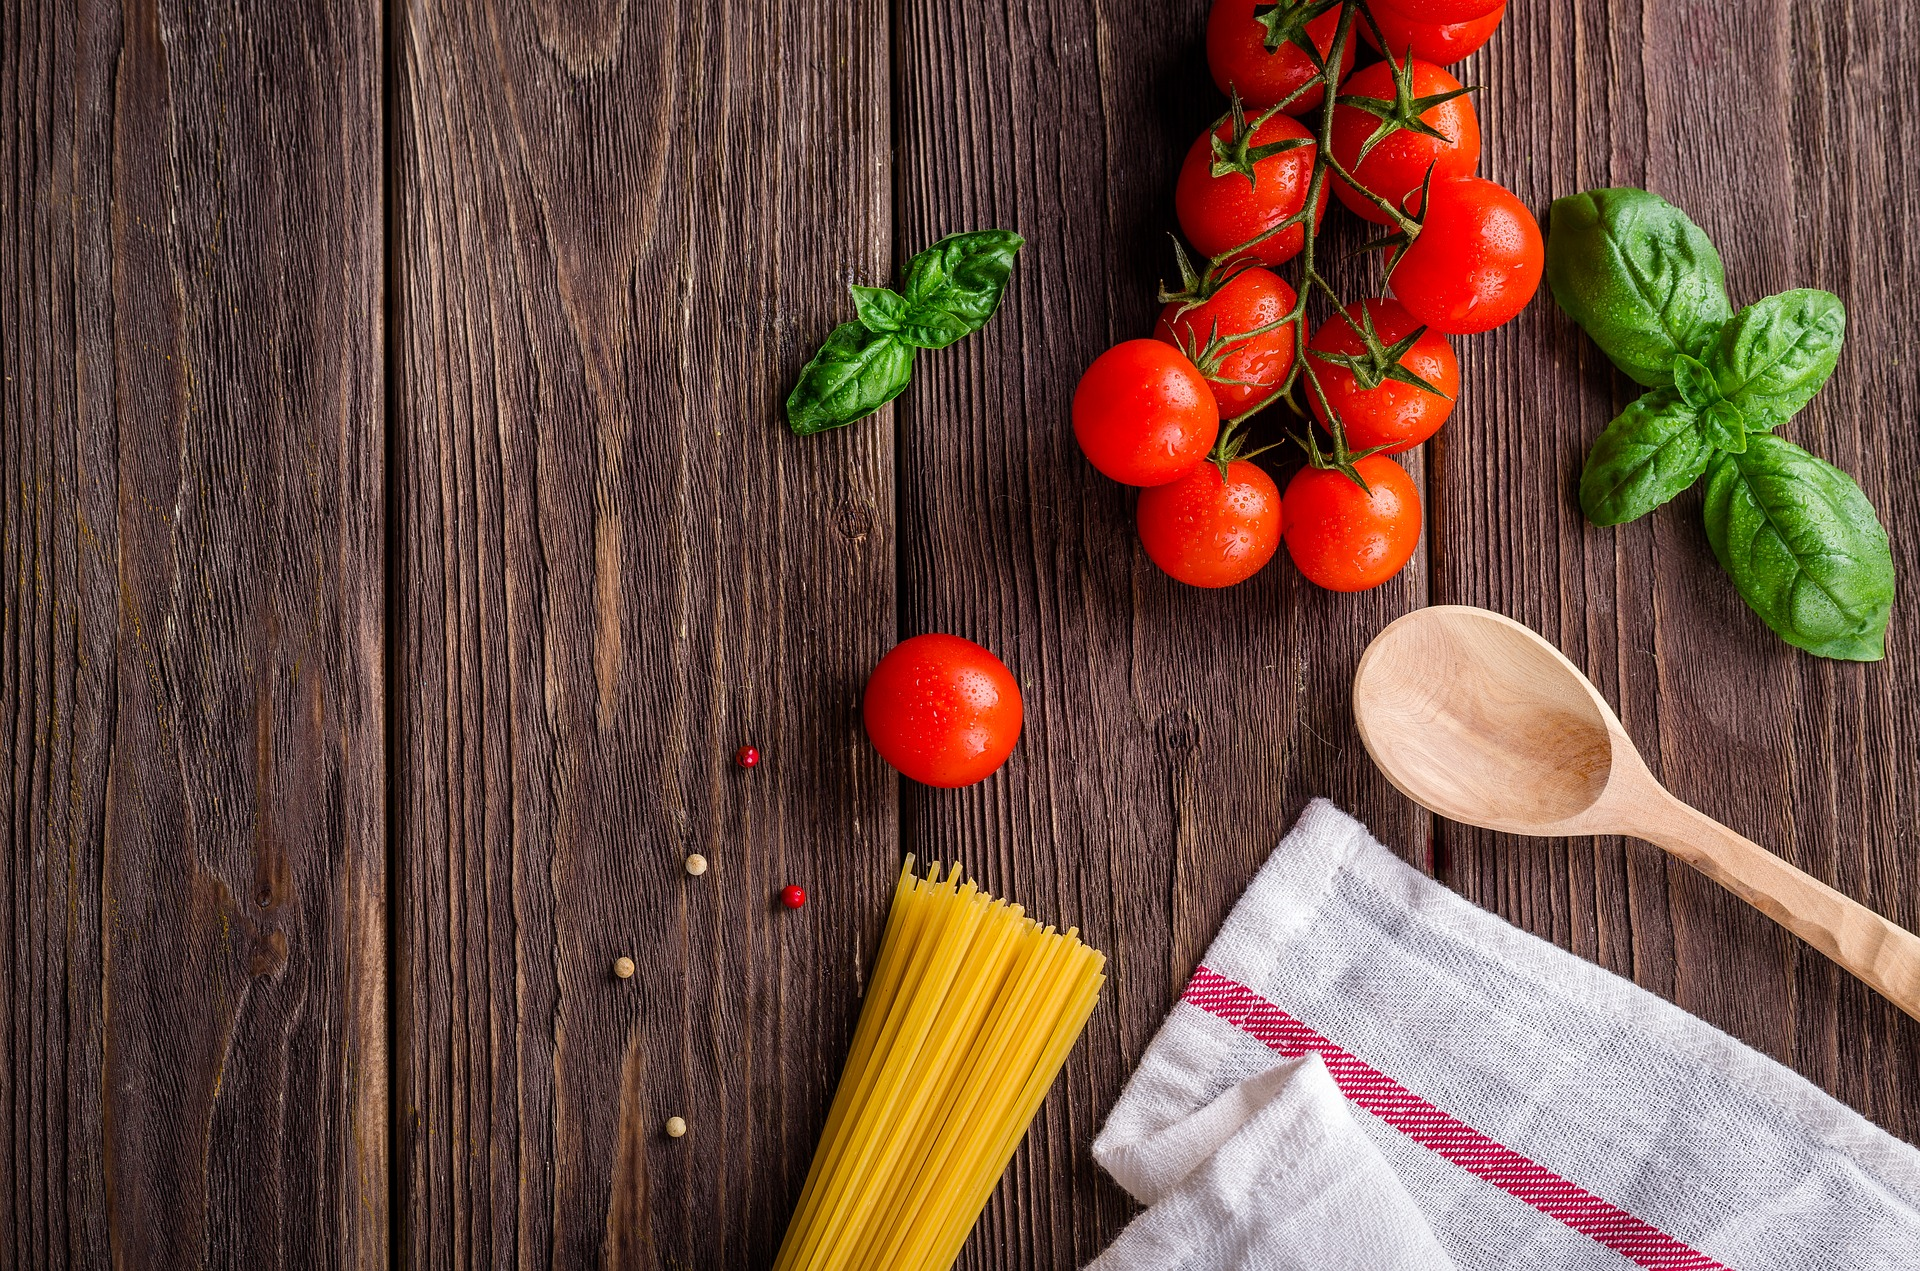 When it comes to staying healthy and regulating weight, it is important to look seriously about what you are eating and some unhealthy habits that you may have.